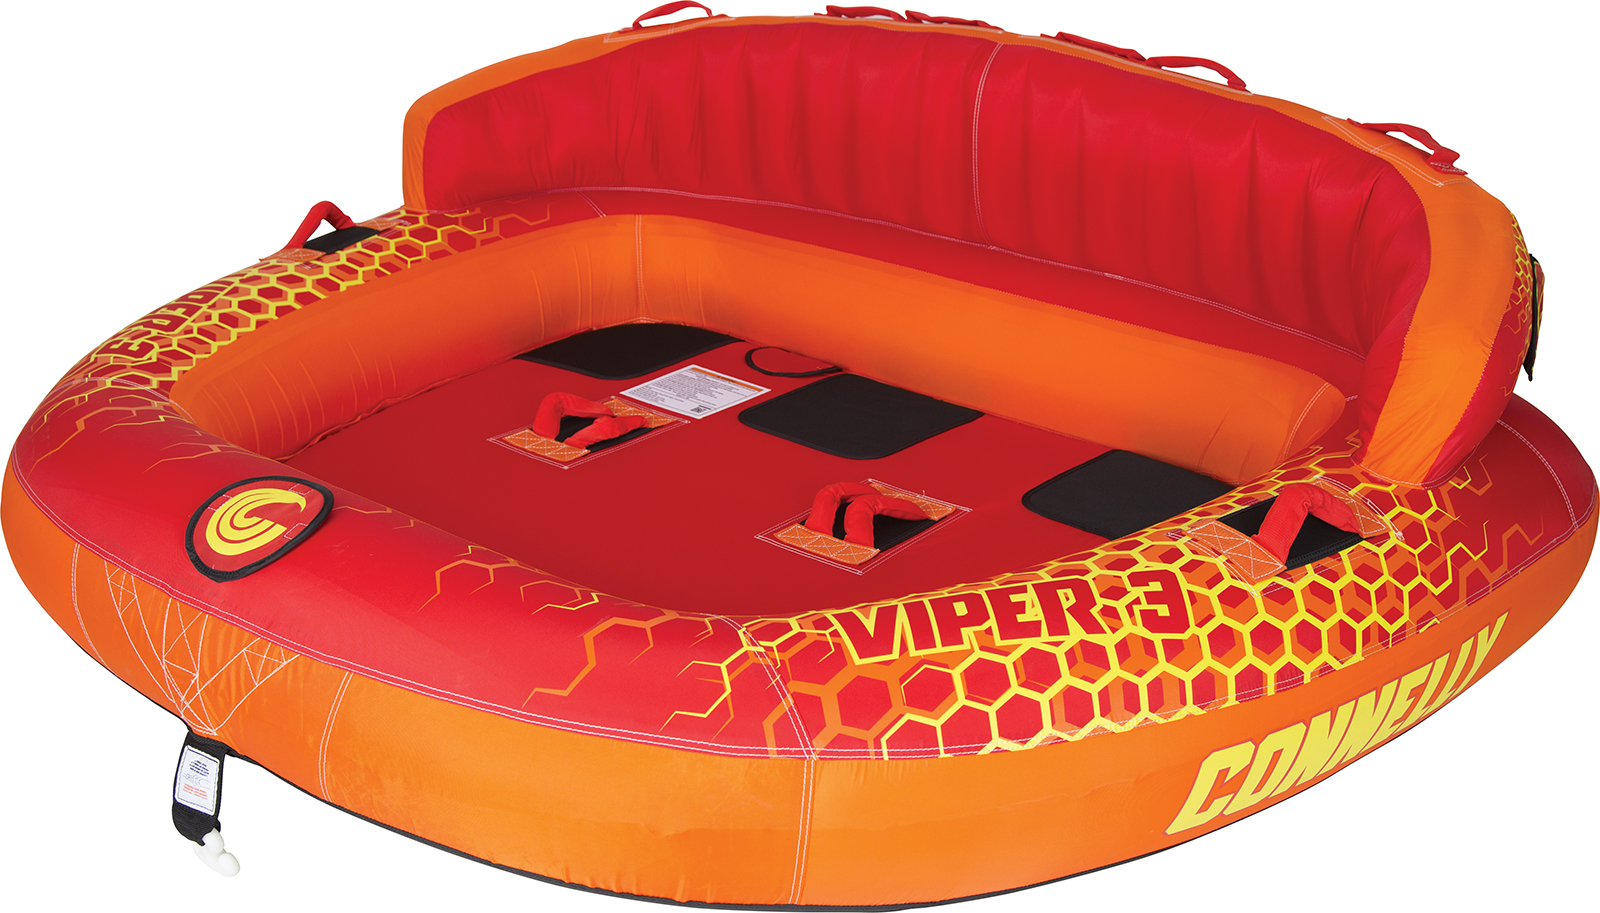 VIPER 3 TOWABLE TUBE CONNELLY 2018